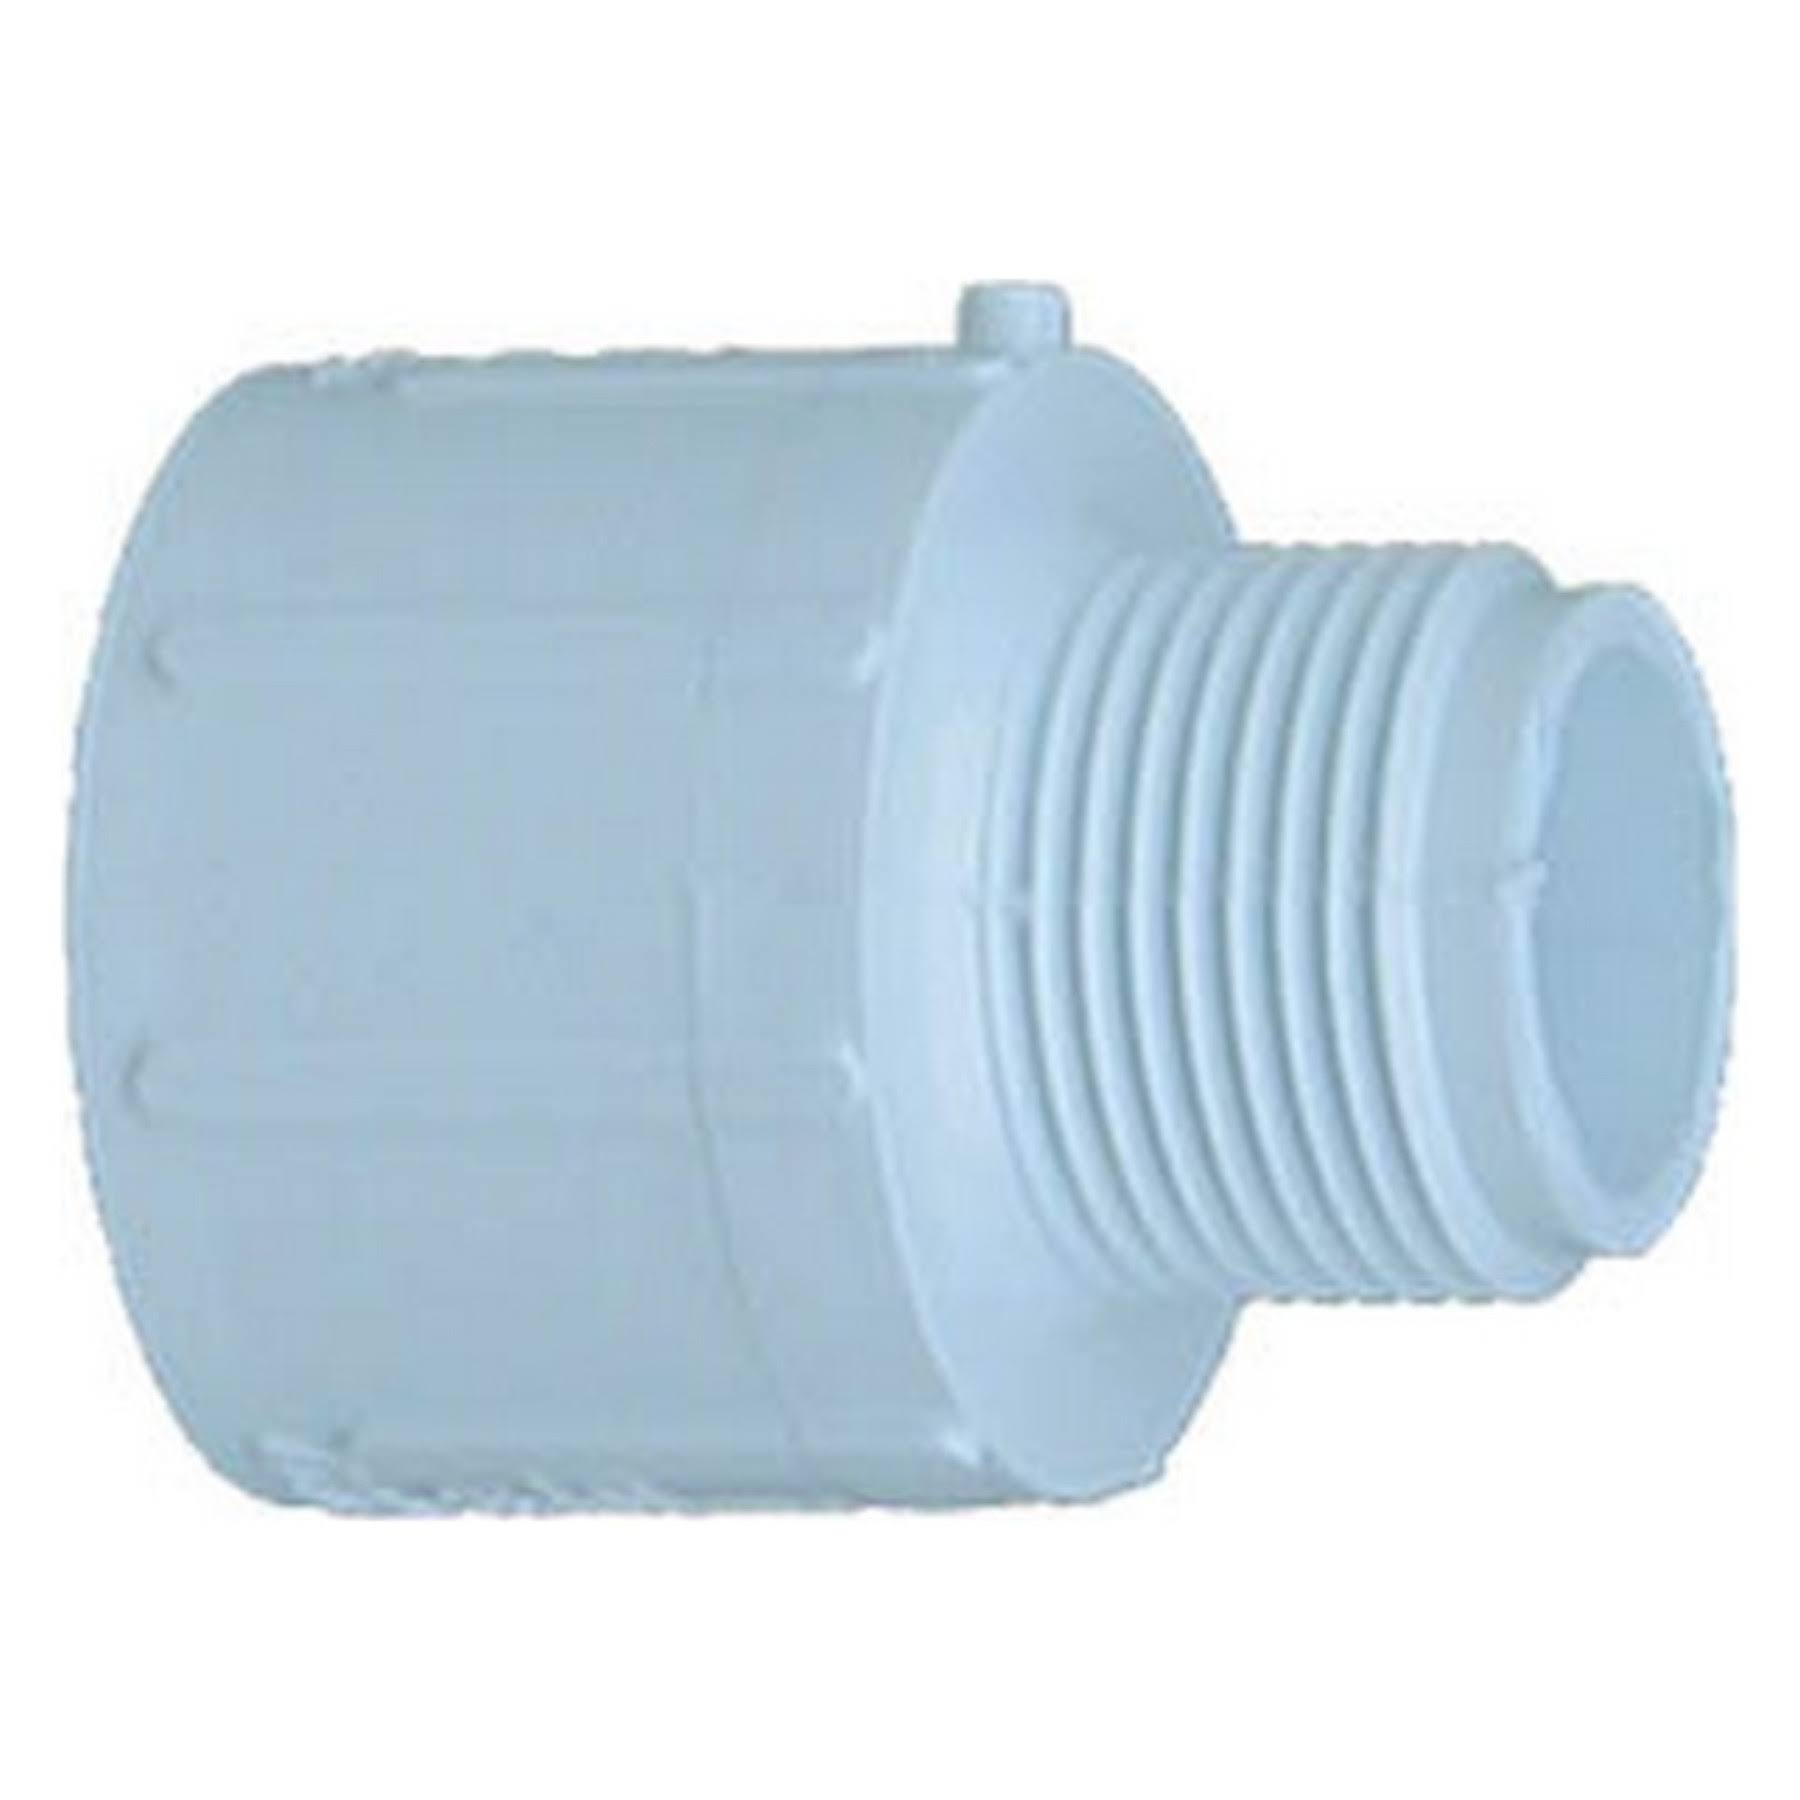 "Genova Products Male Adapter Pressure Fitting - 1"" x 3/4"""